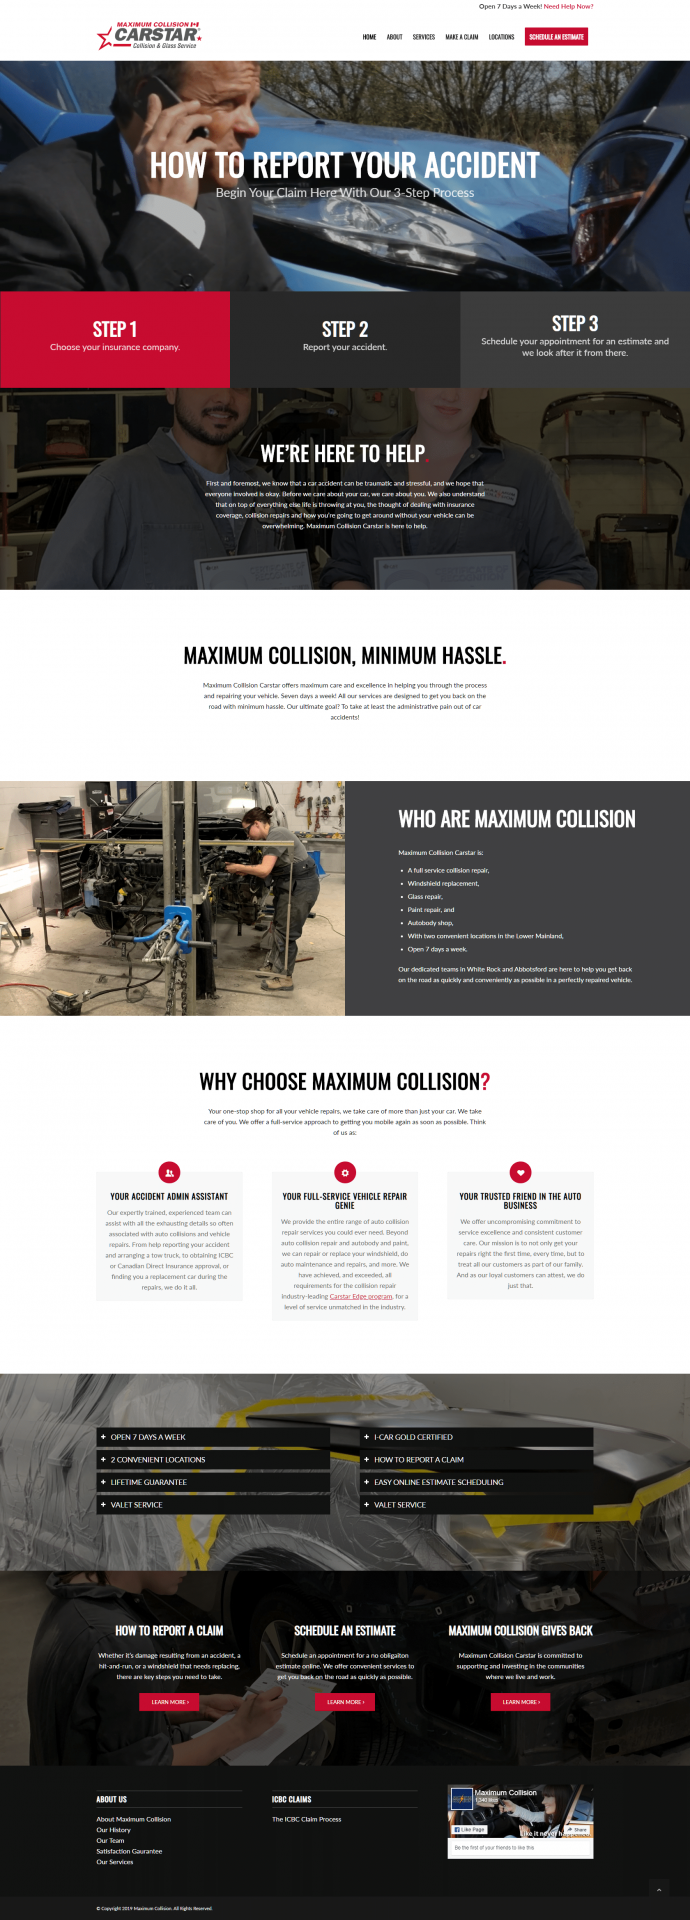 maximum collision website design homepage